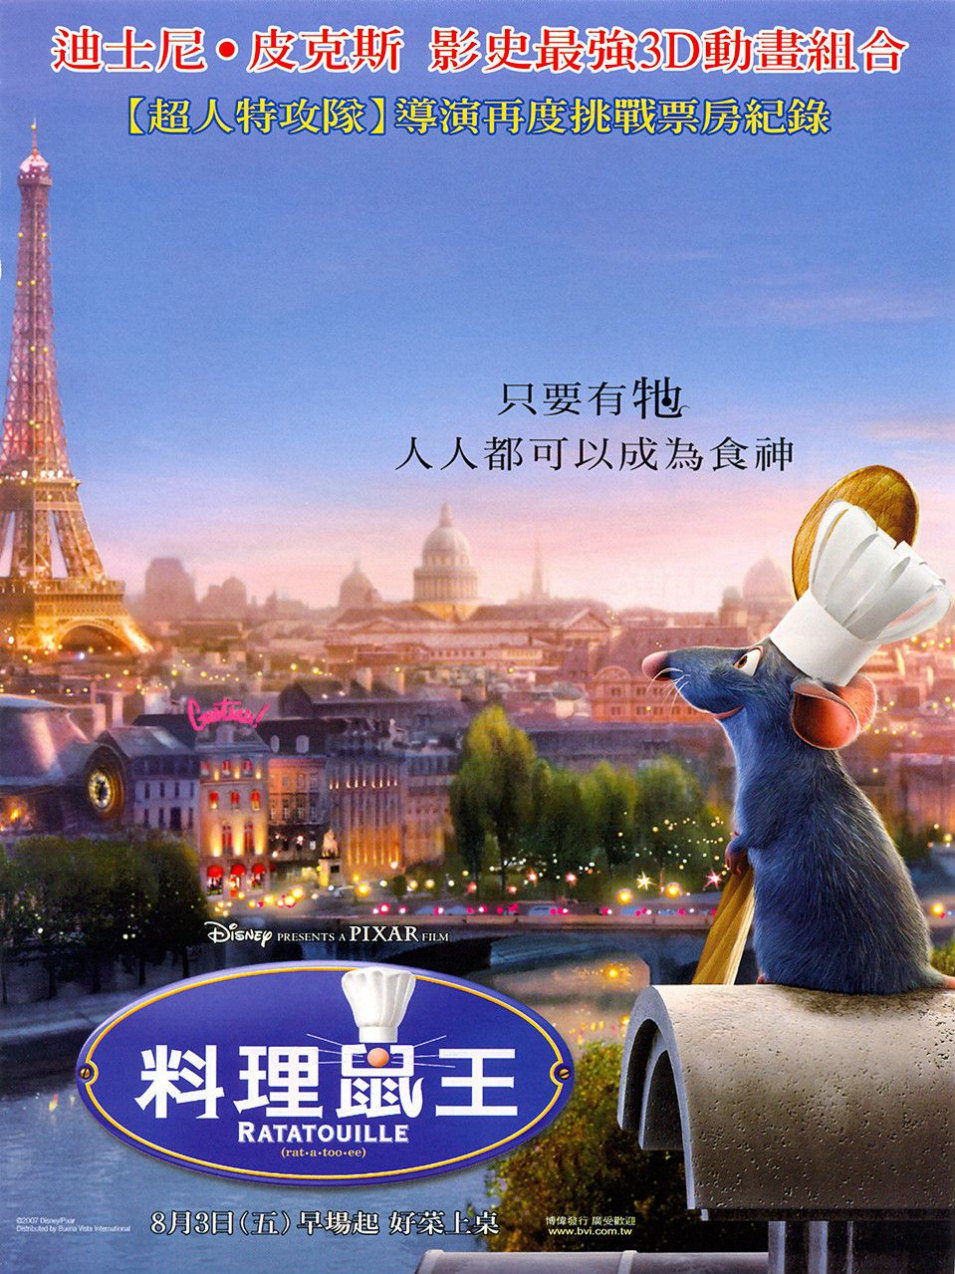 Taiwan poster for Ratatouille